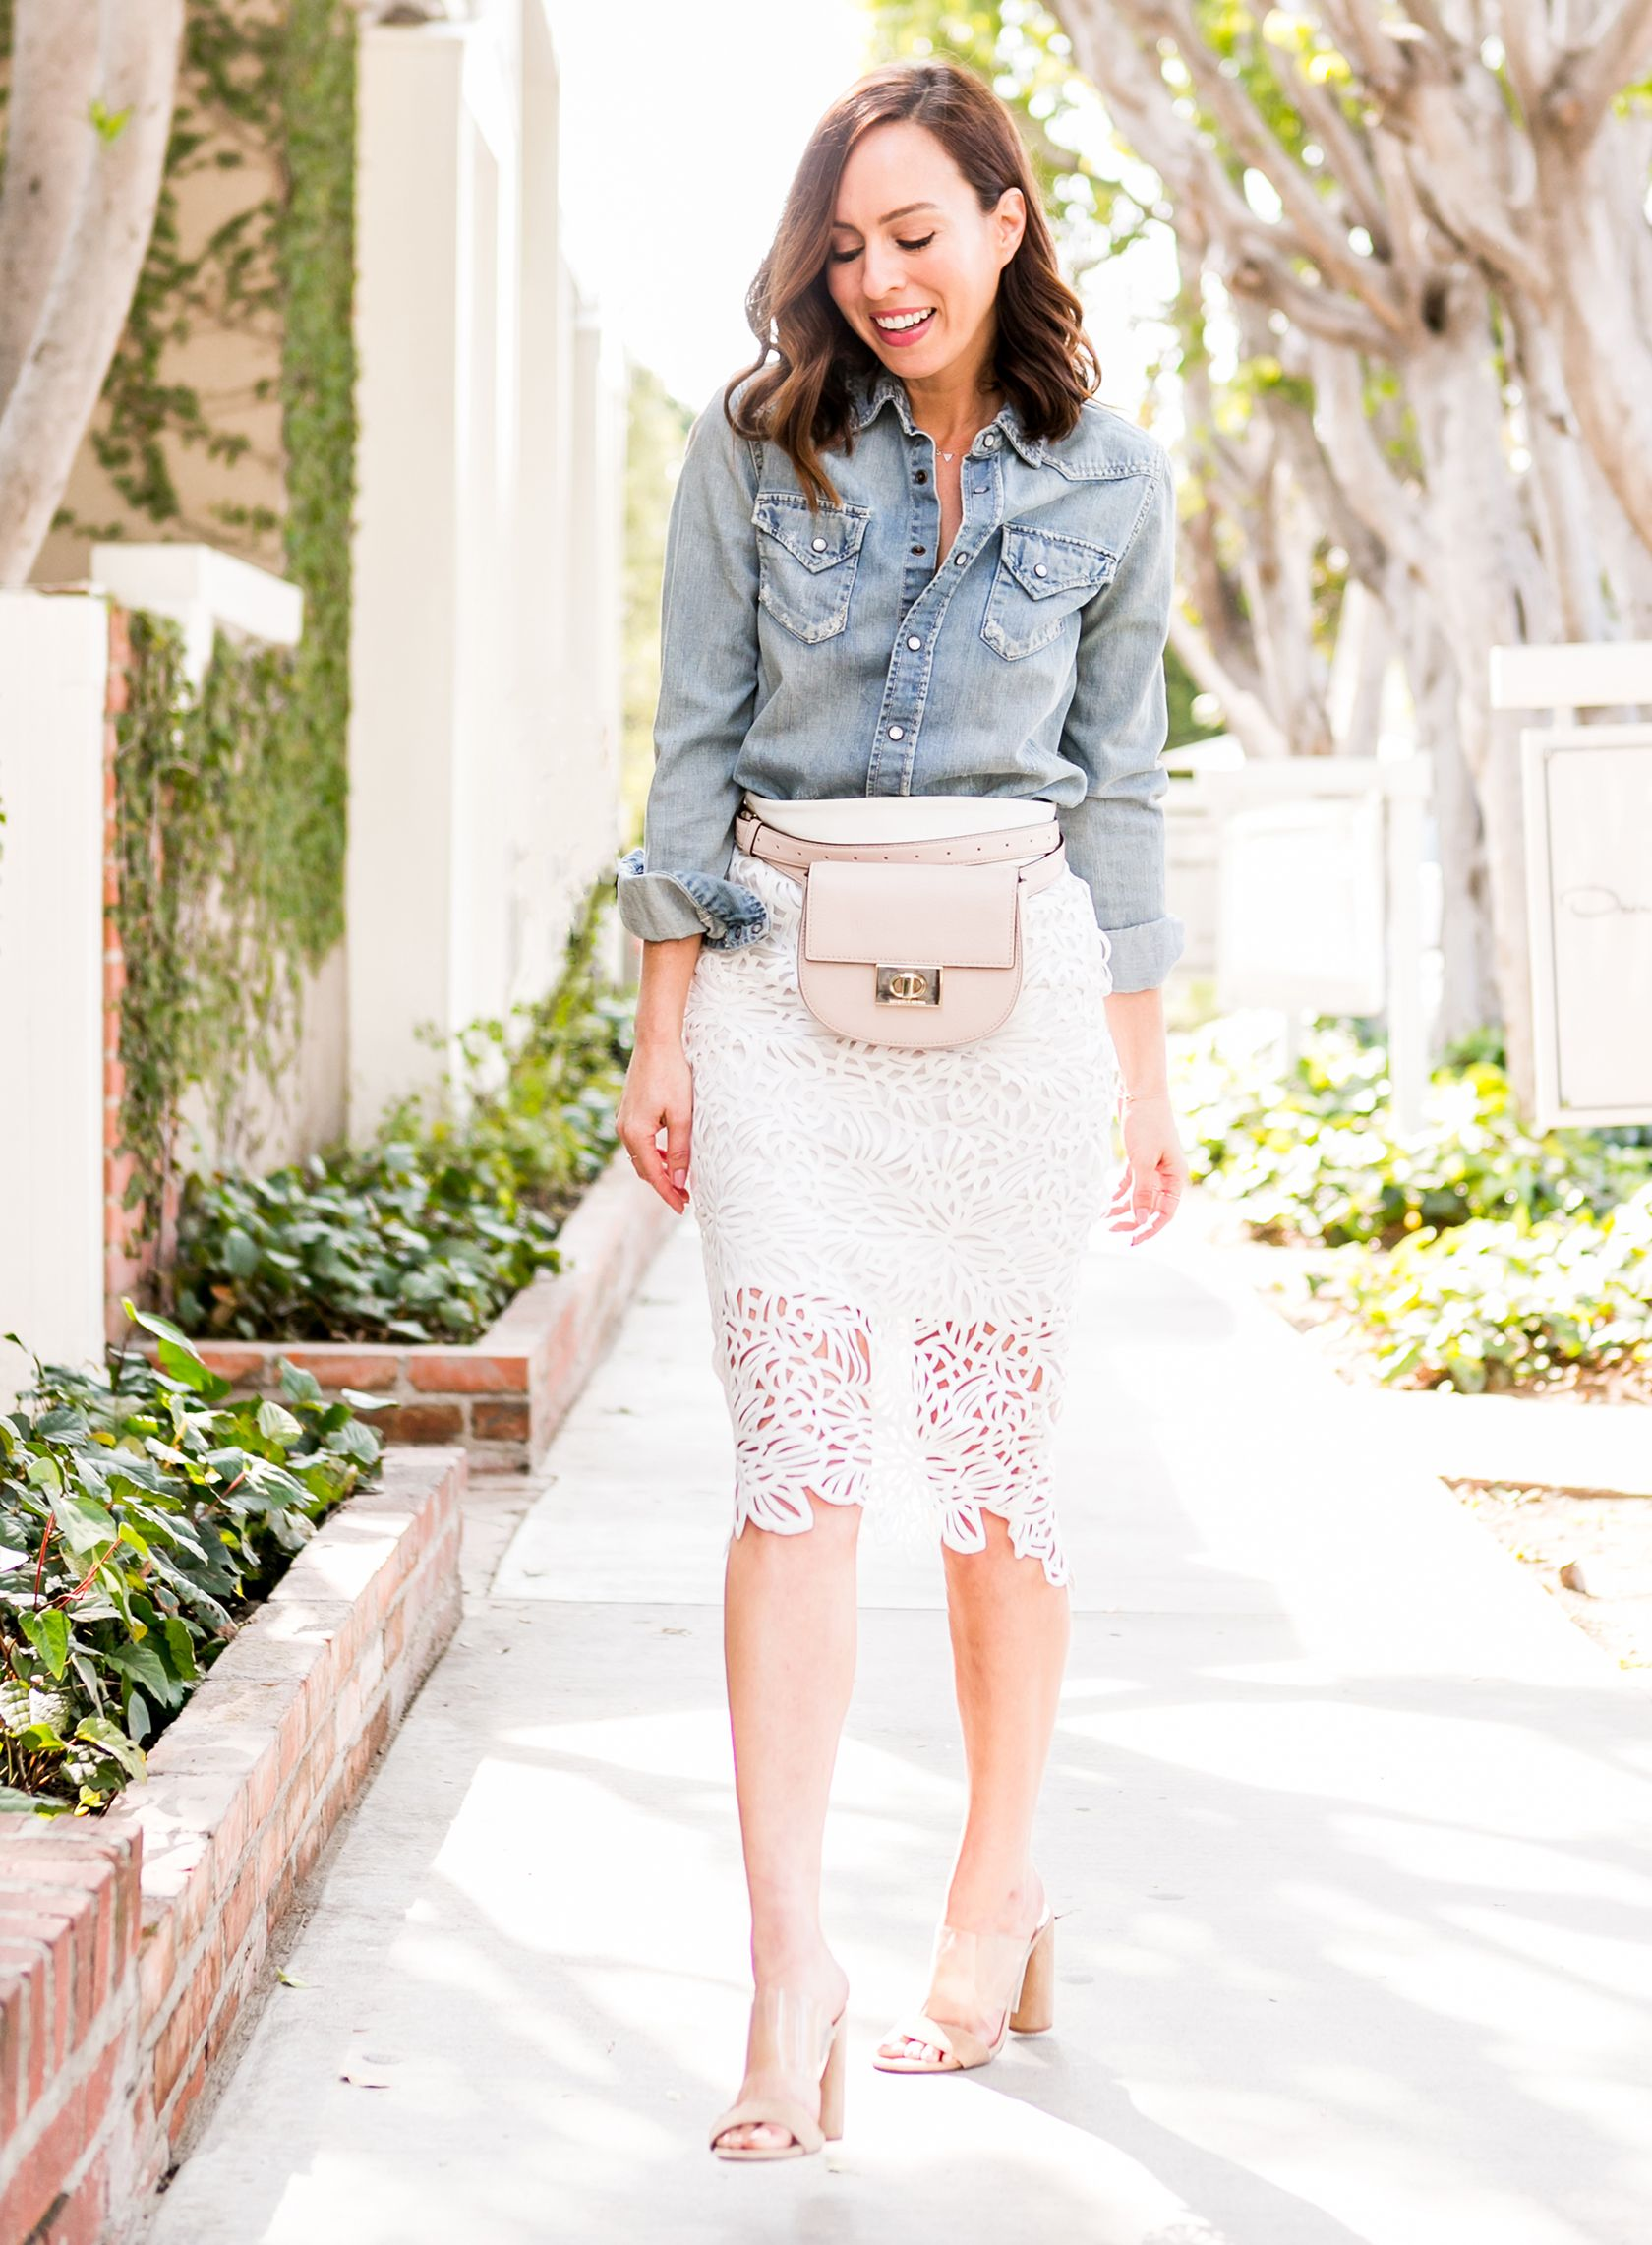 da2174415c65 Sydne Style shows what to wear with a denim skirt for spring outfit ideas   lace  springoutfits  white  chambray  beltbag